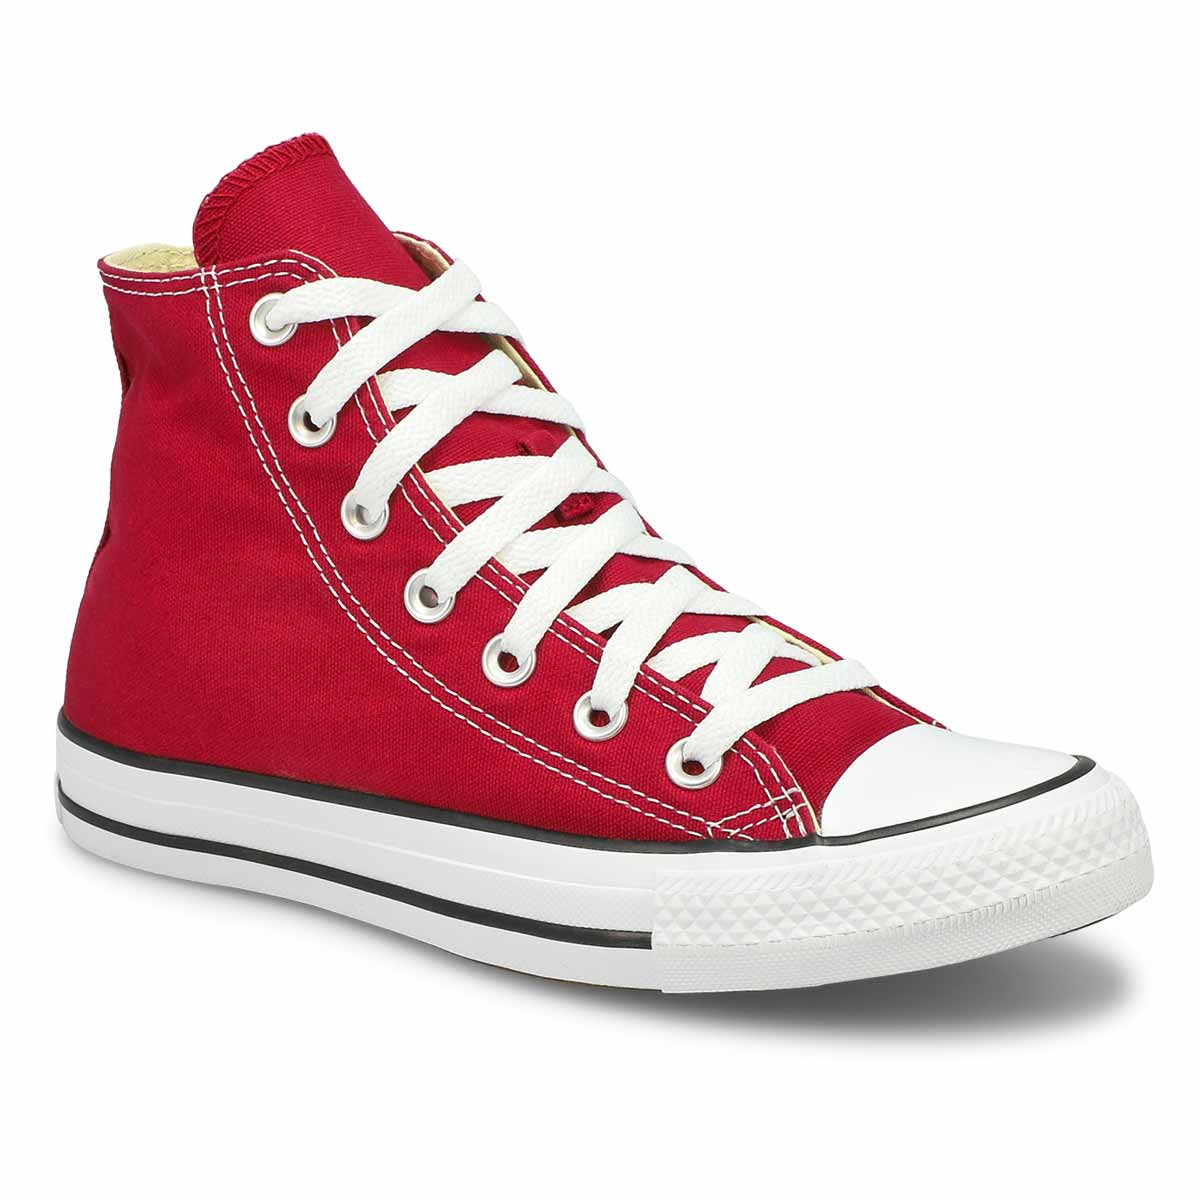 Women's CT ALL STAR CORE HI maroon sneakers